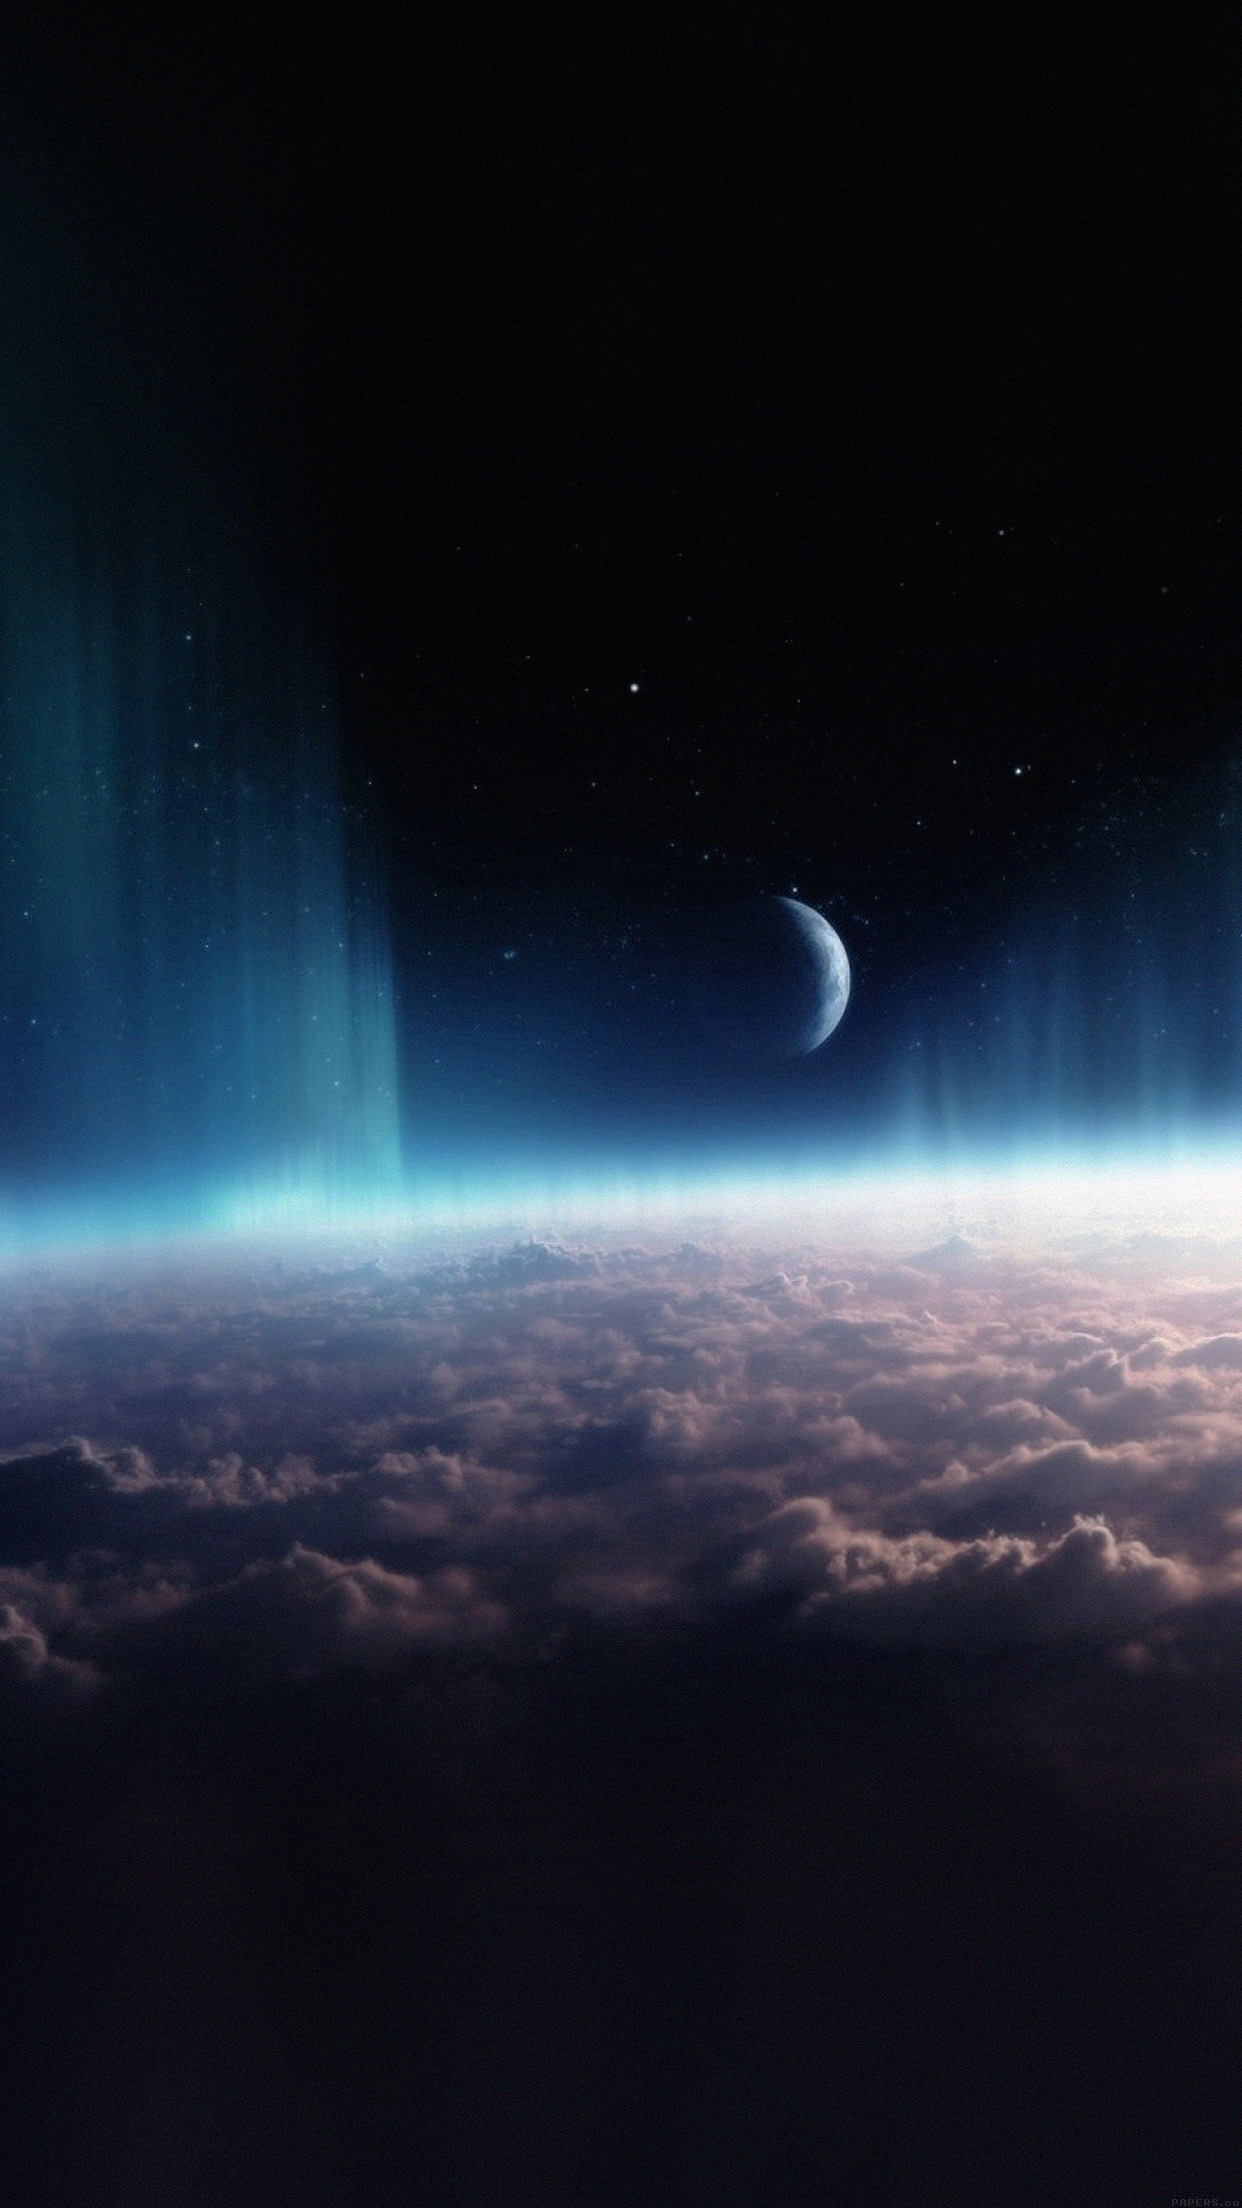 Space Interstellar Sky Cloud Nature Android wallpaper